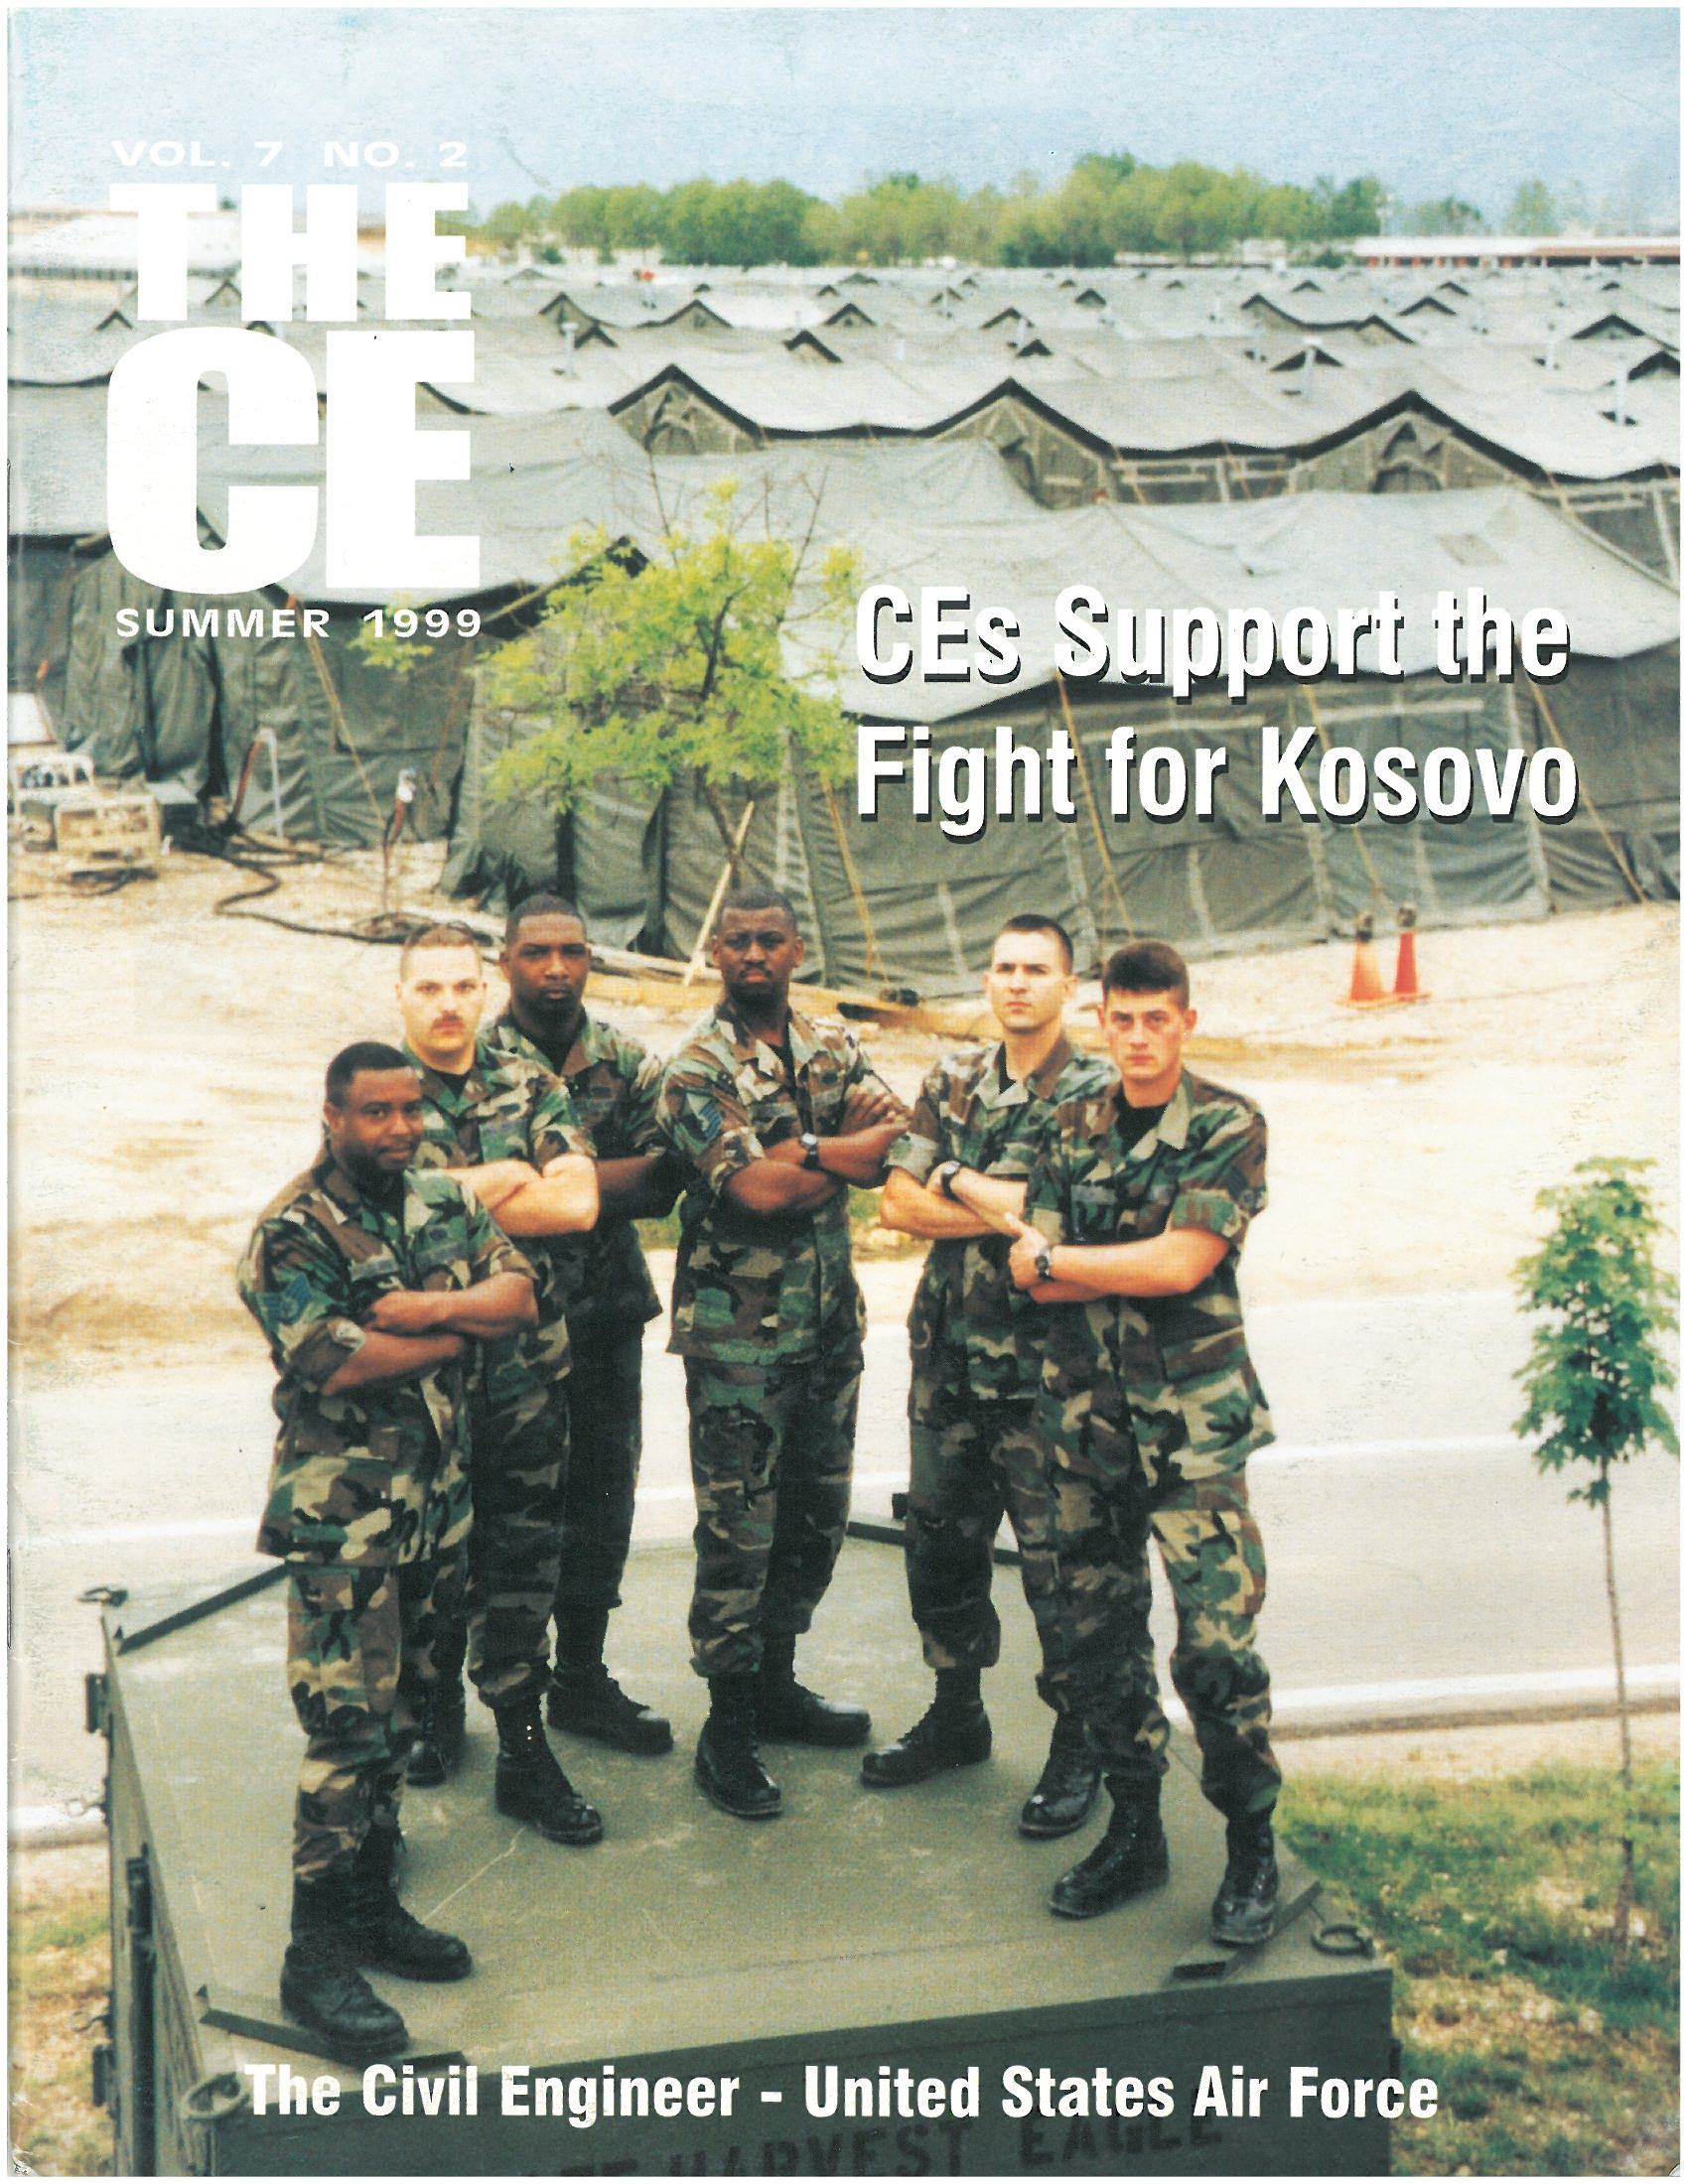 Summer 1999, CEs Support the Fight for Kosovo